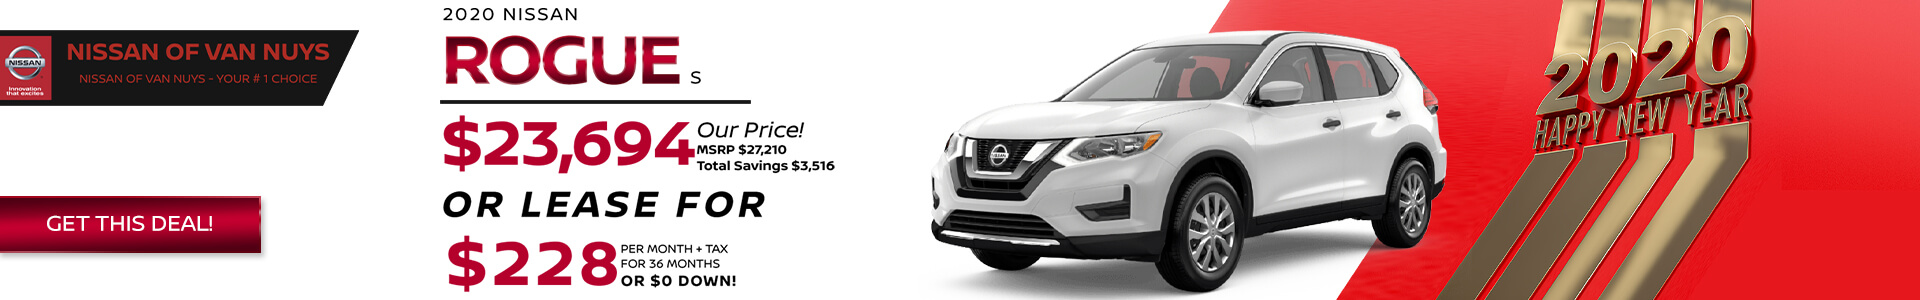 Nissan Rogue - Lease for $228